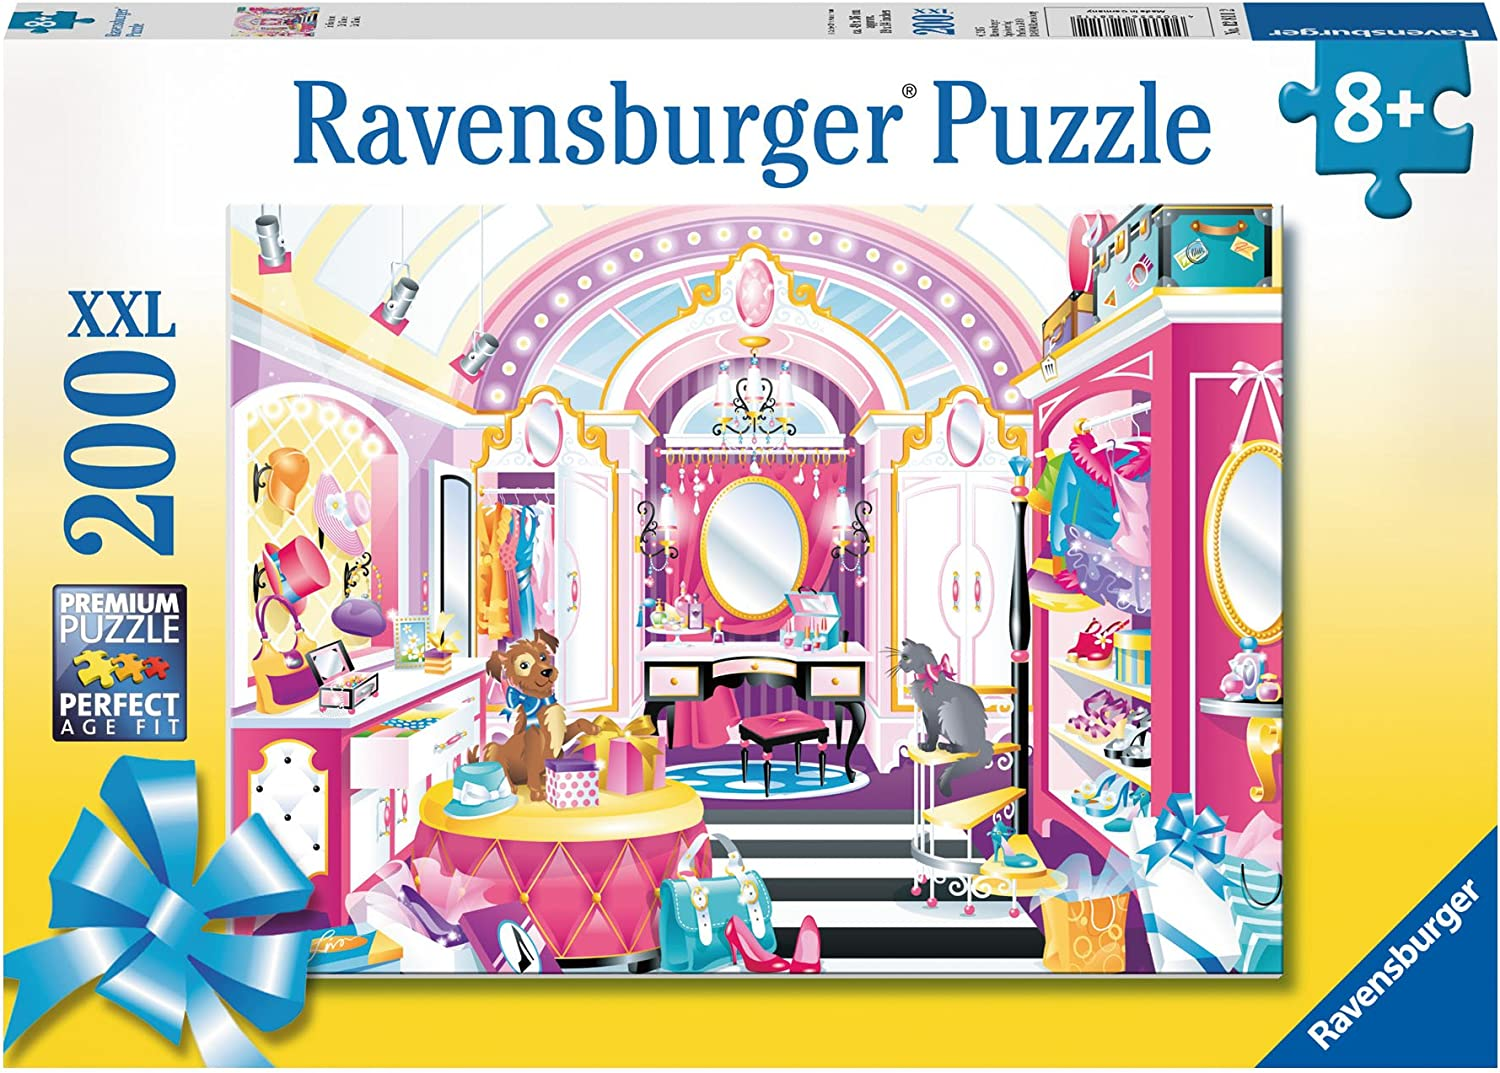 Ravensburger in Fashion Puzzle (200-Piece)